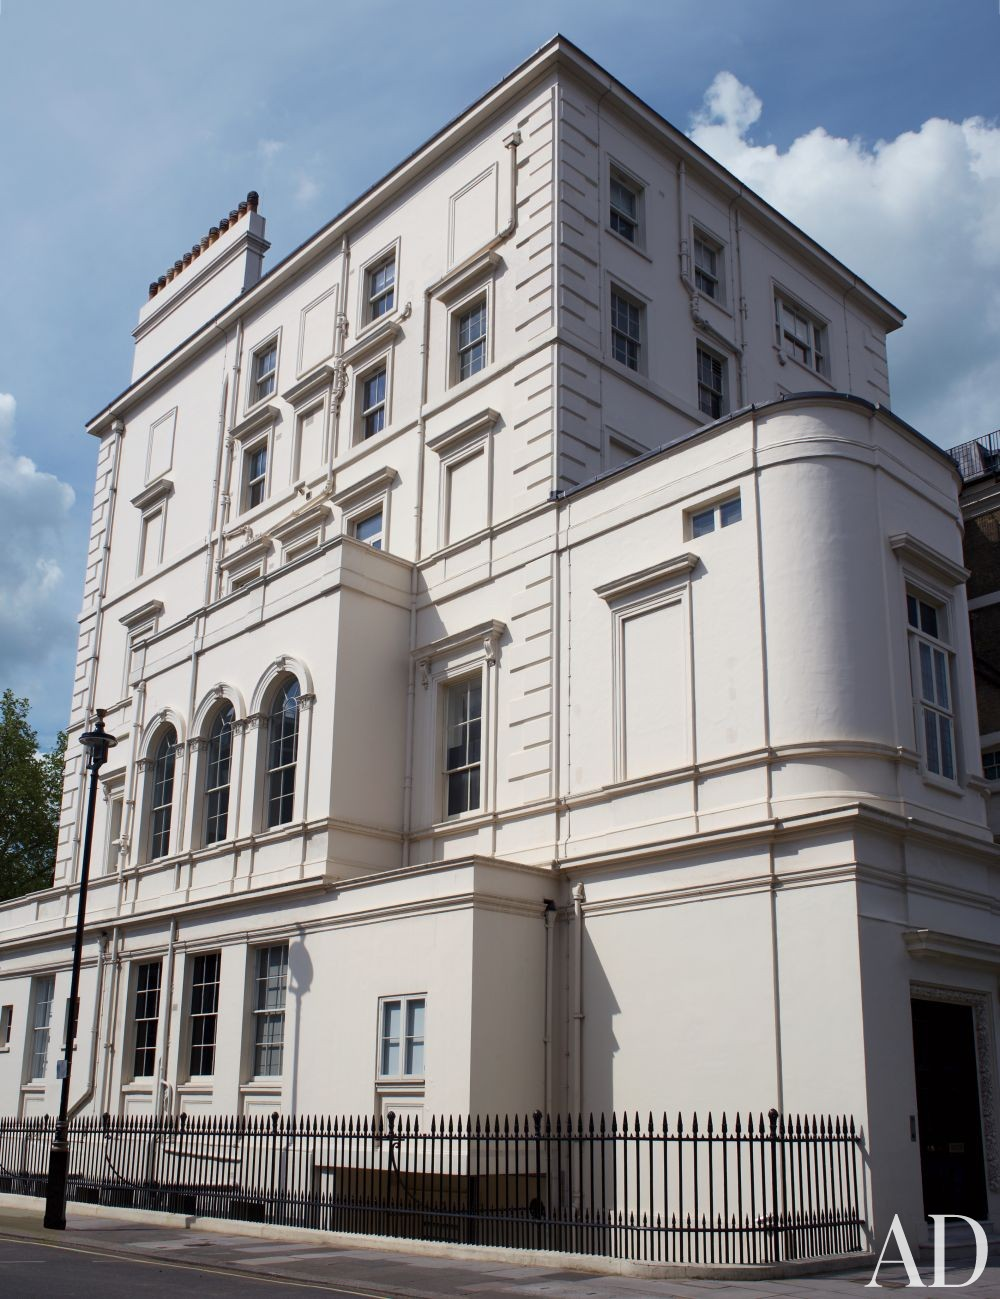 Traditional Exterior by Francis Sultana Ltd. and Thomas Croft Architects in London, England